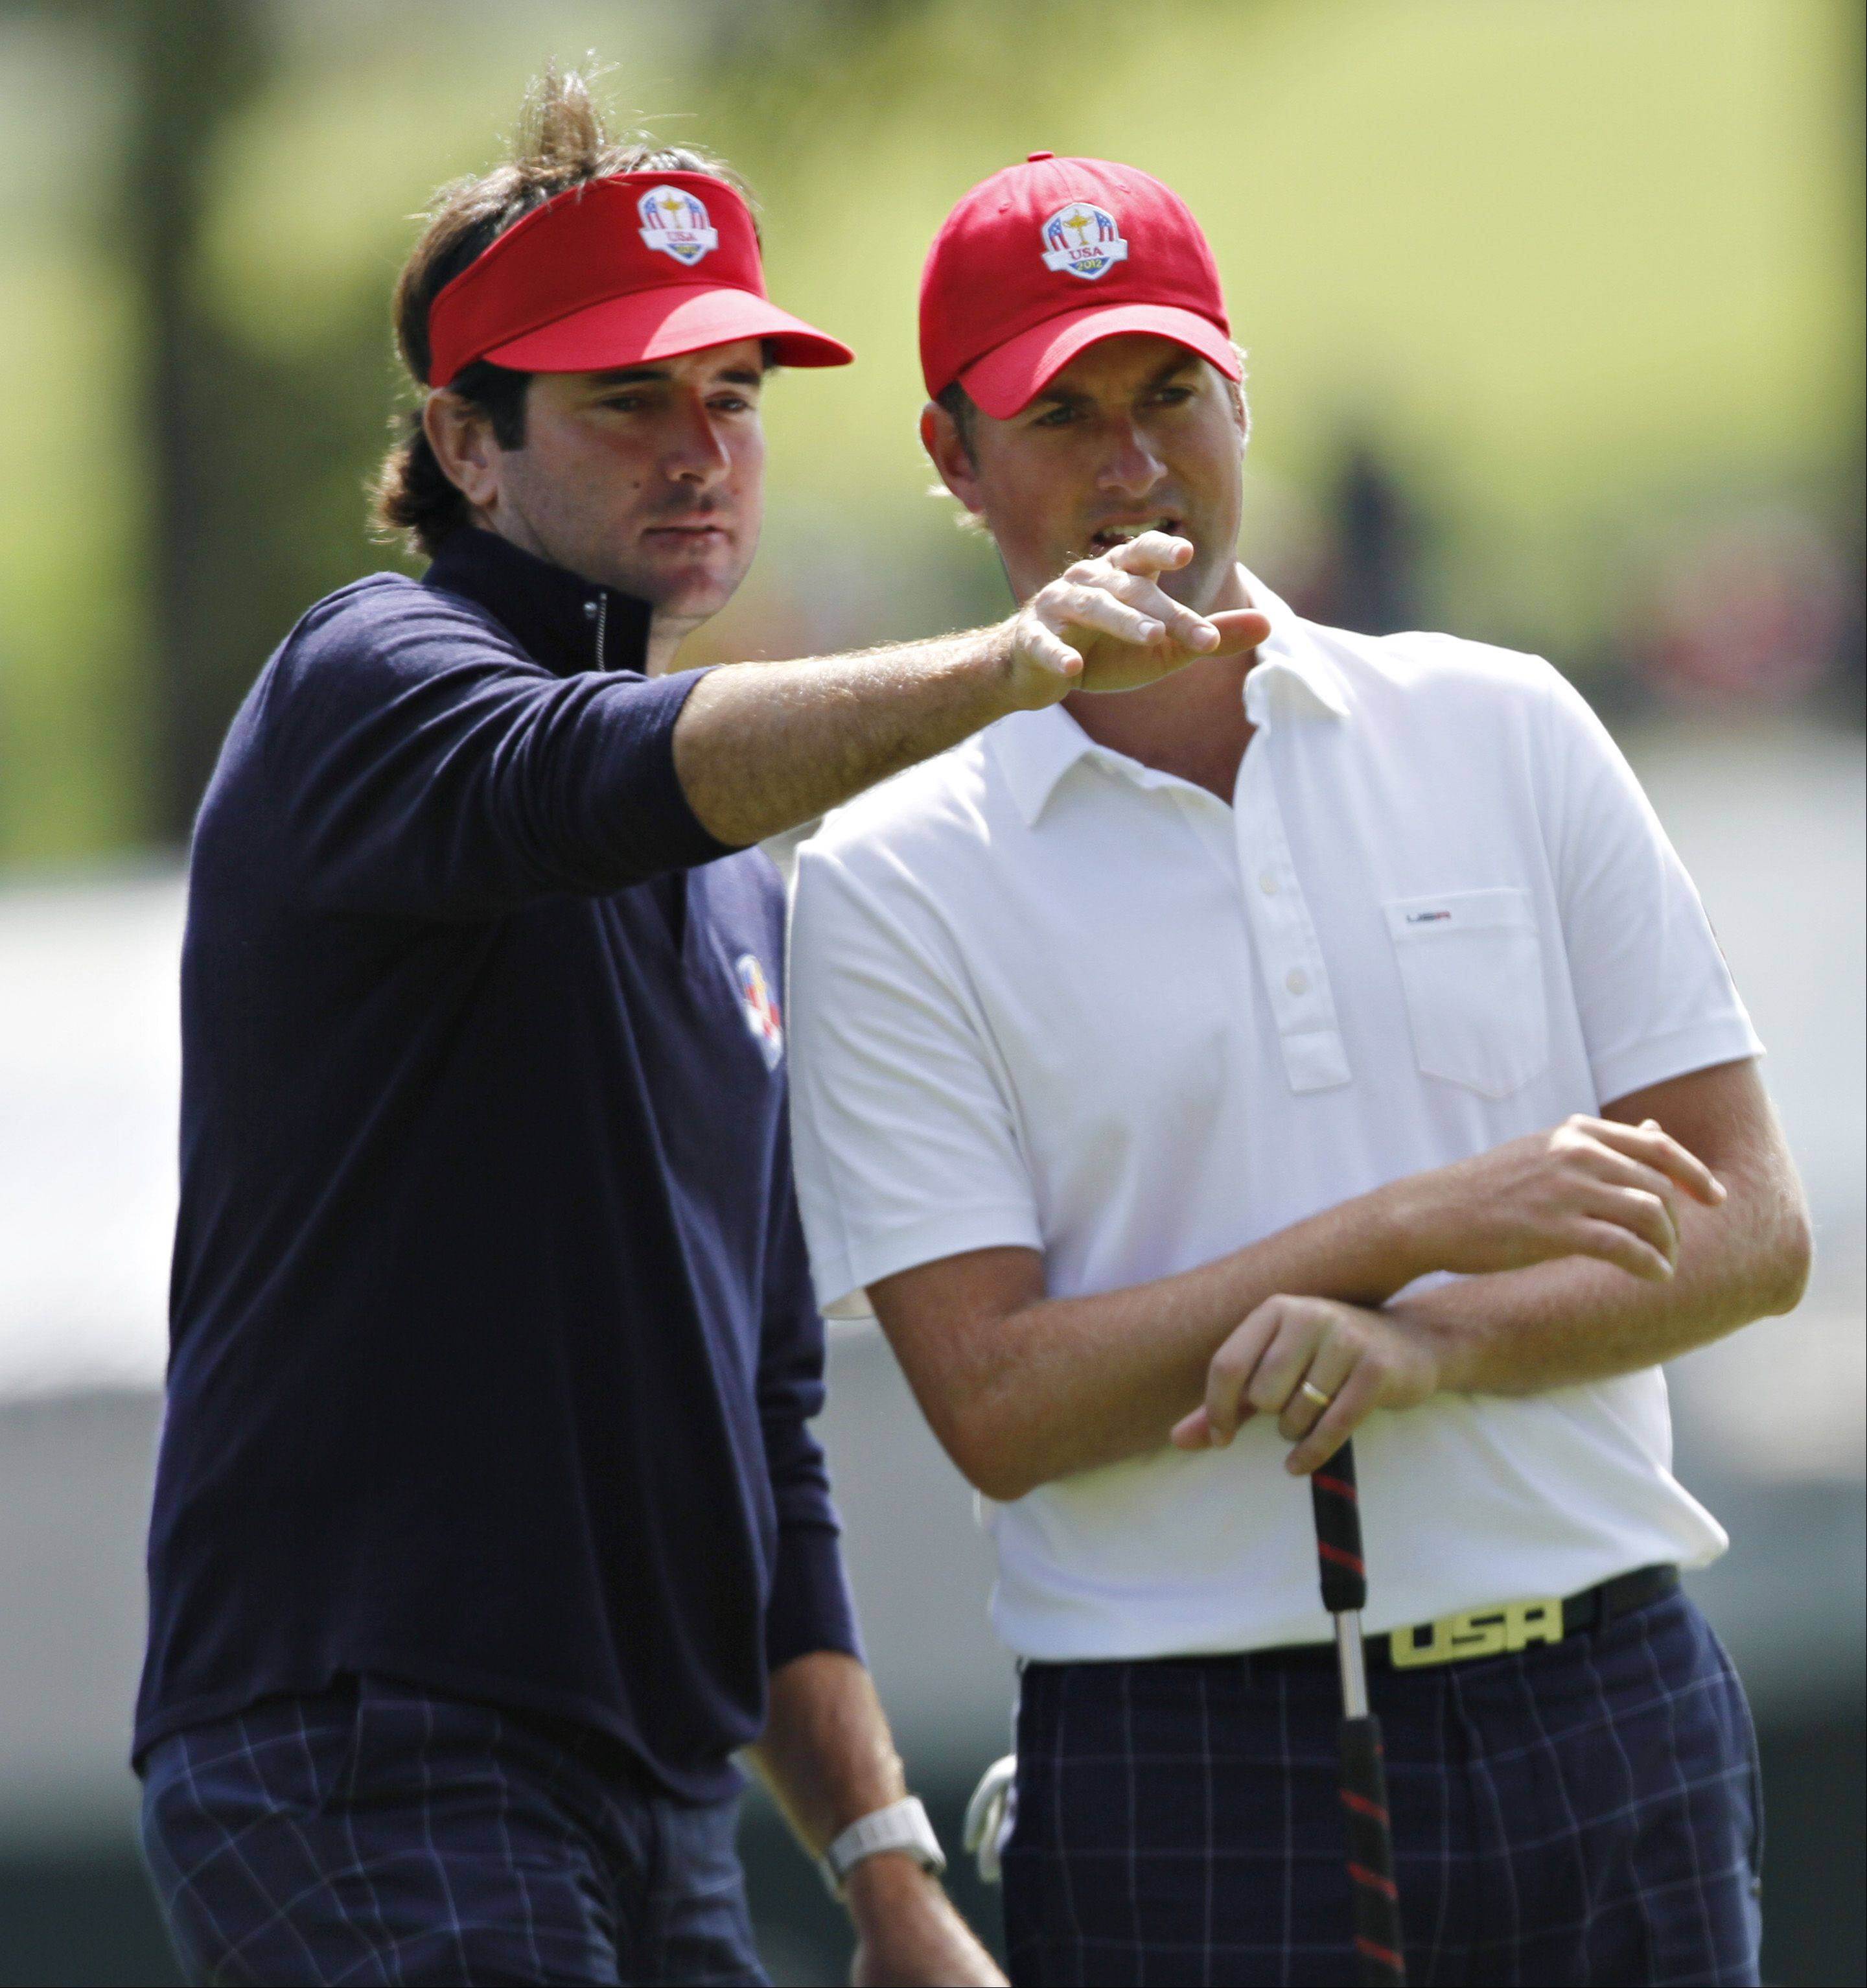 Teammates Bubba Watson and Webb Simpson discuss the putting line on number four.